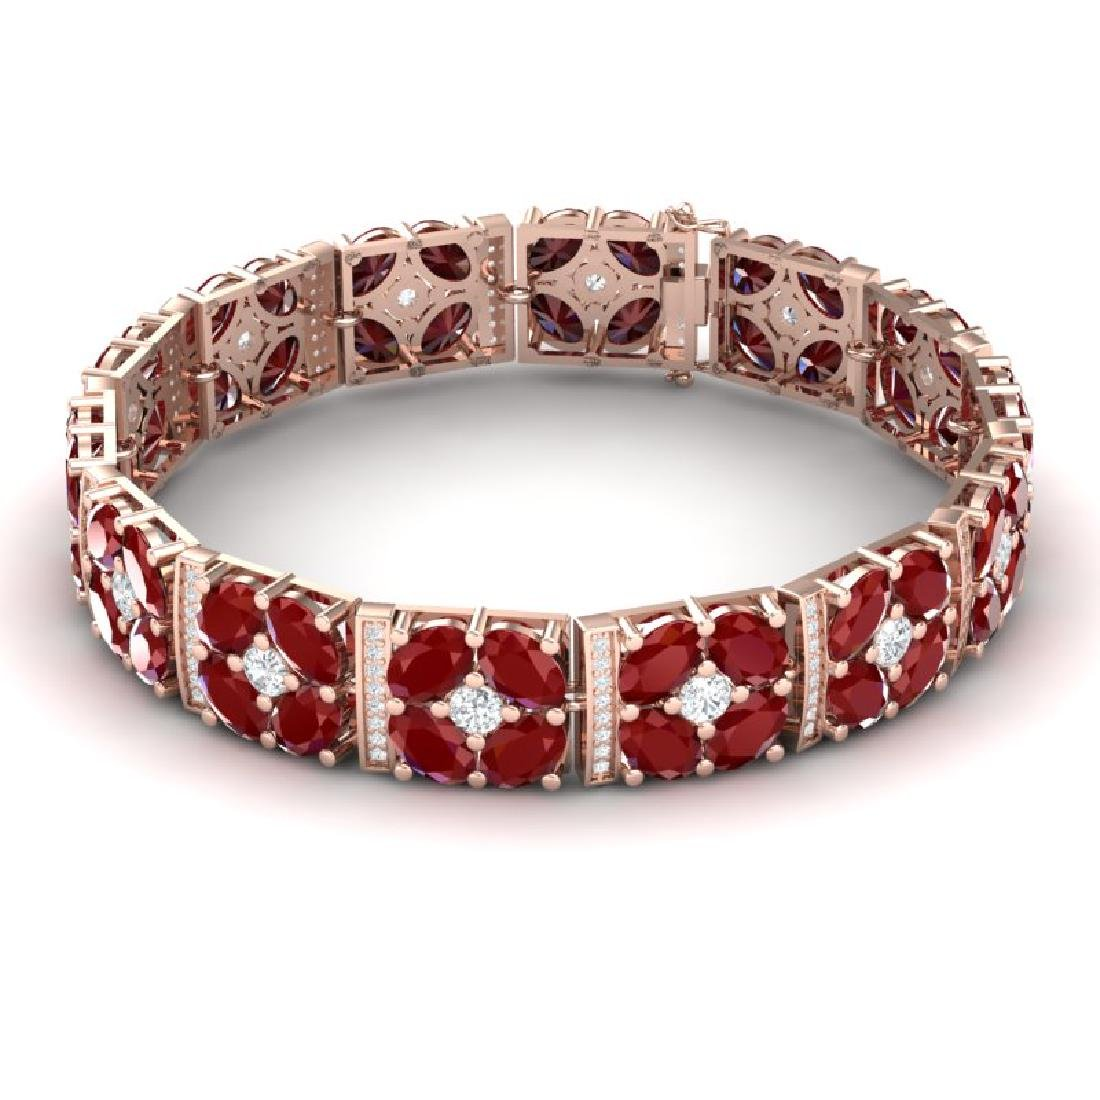 48.04 CTW Royalty Ruby & VS Diamond Bracelet 18K Rose - 3